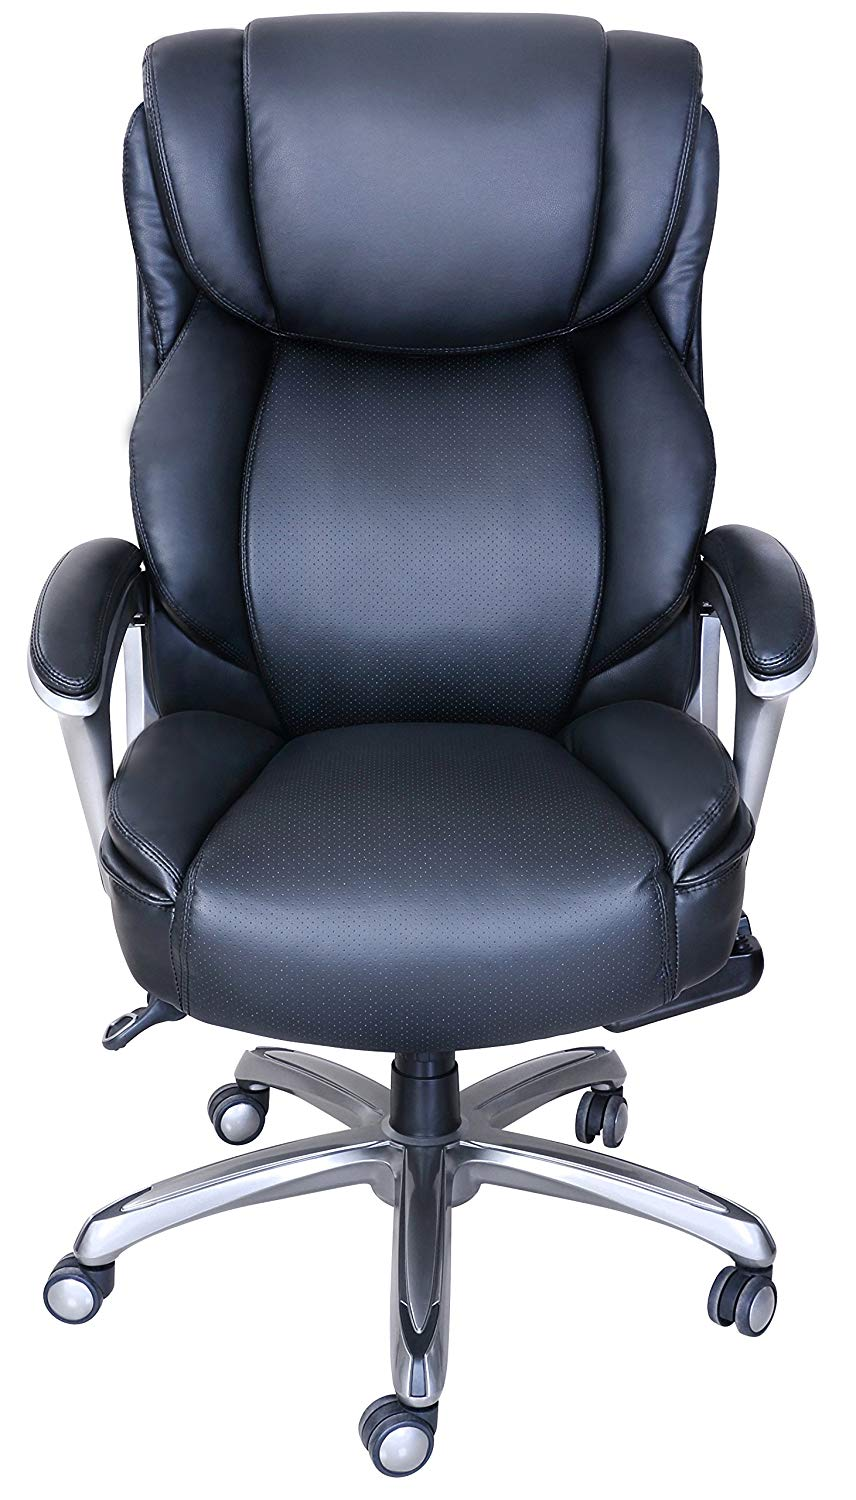 Gentherm-heated-cooled-office-chair